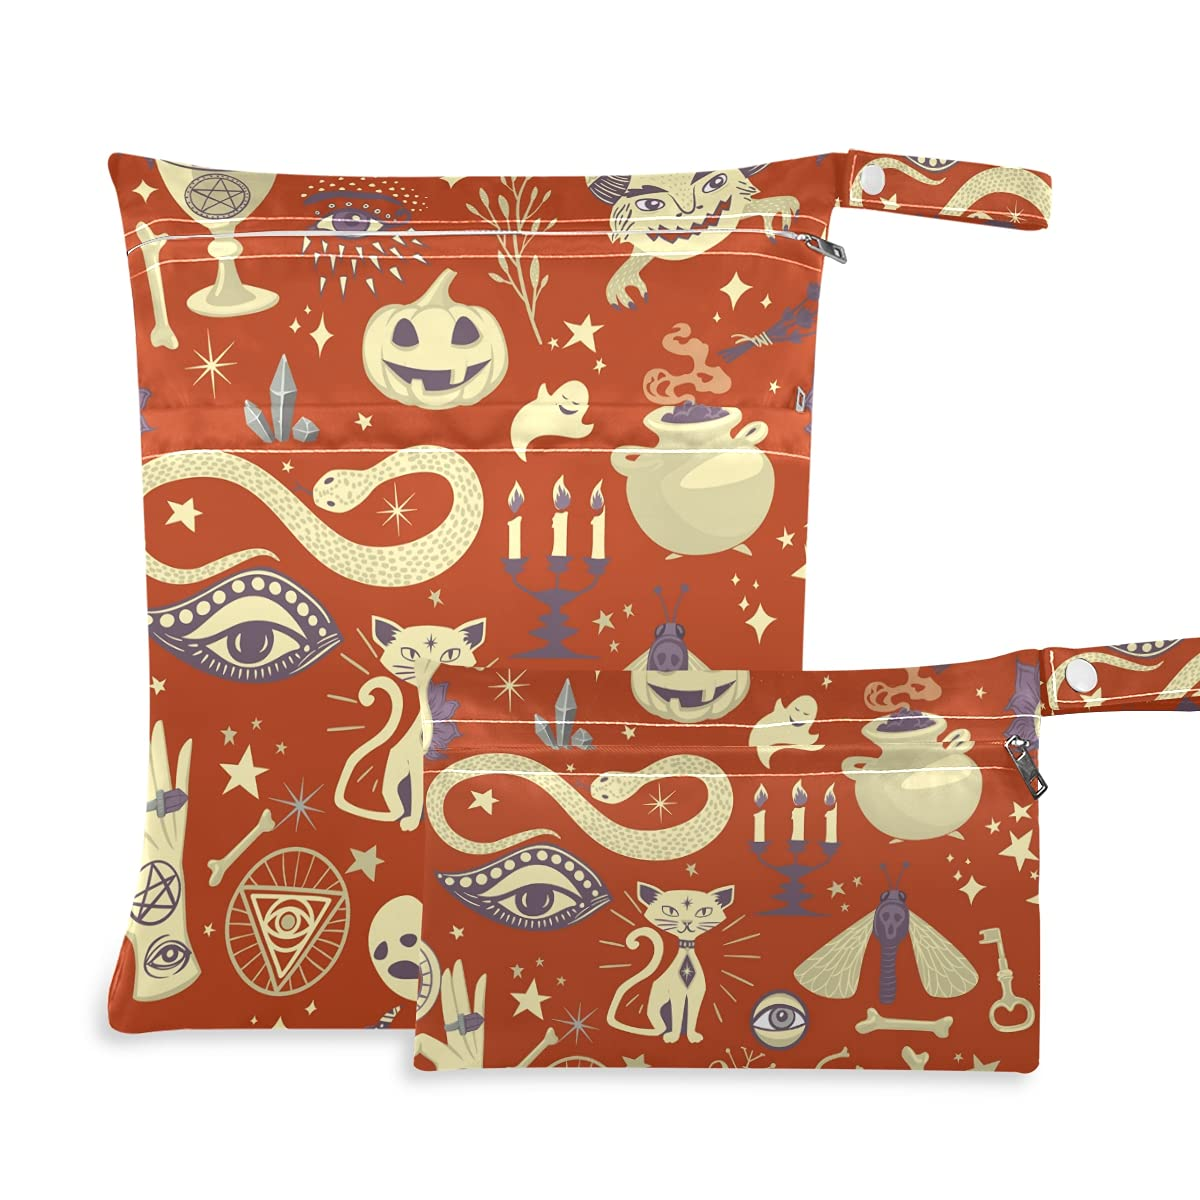 Halloween Pumpkins Ghost Wet Dry Diaper Challenge the Sale lowest price of Japan ☆ Bag Reusable for